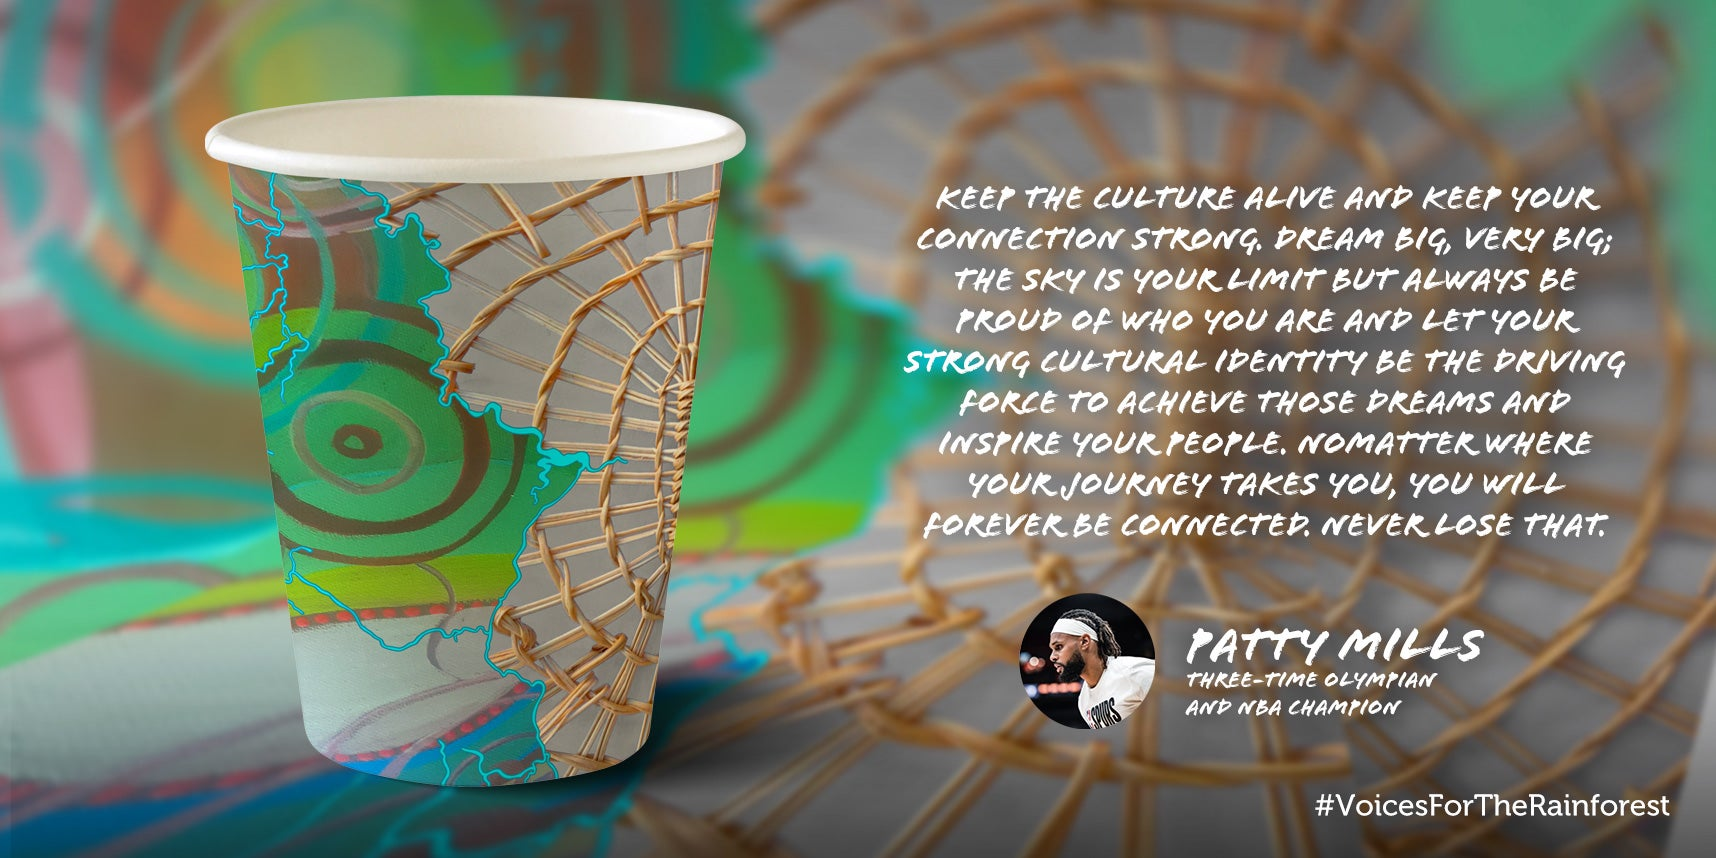 Patty Mills paper cup design